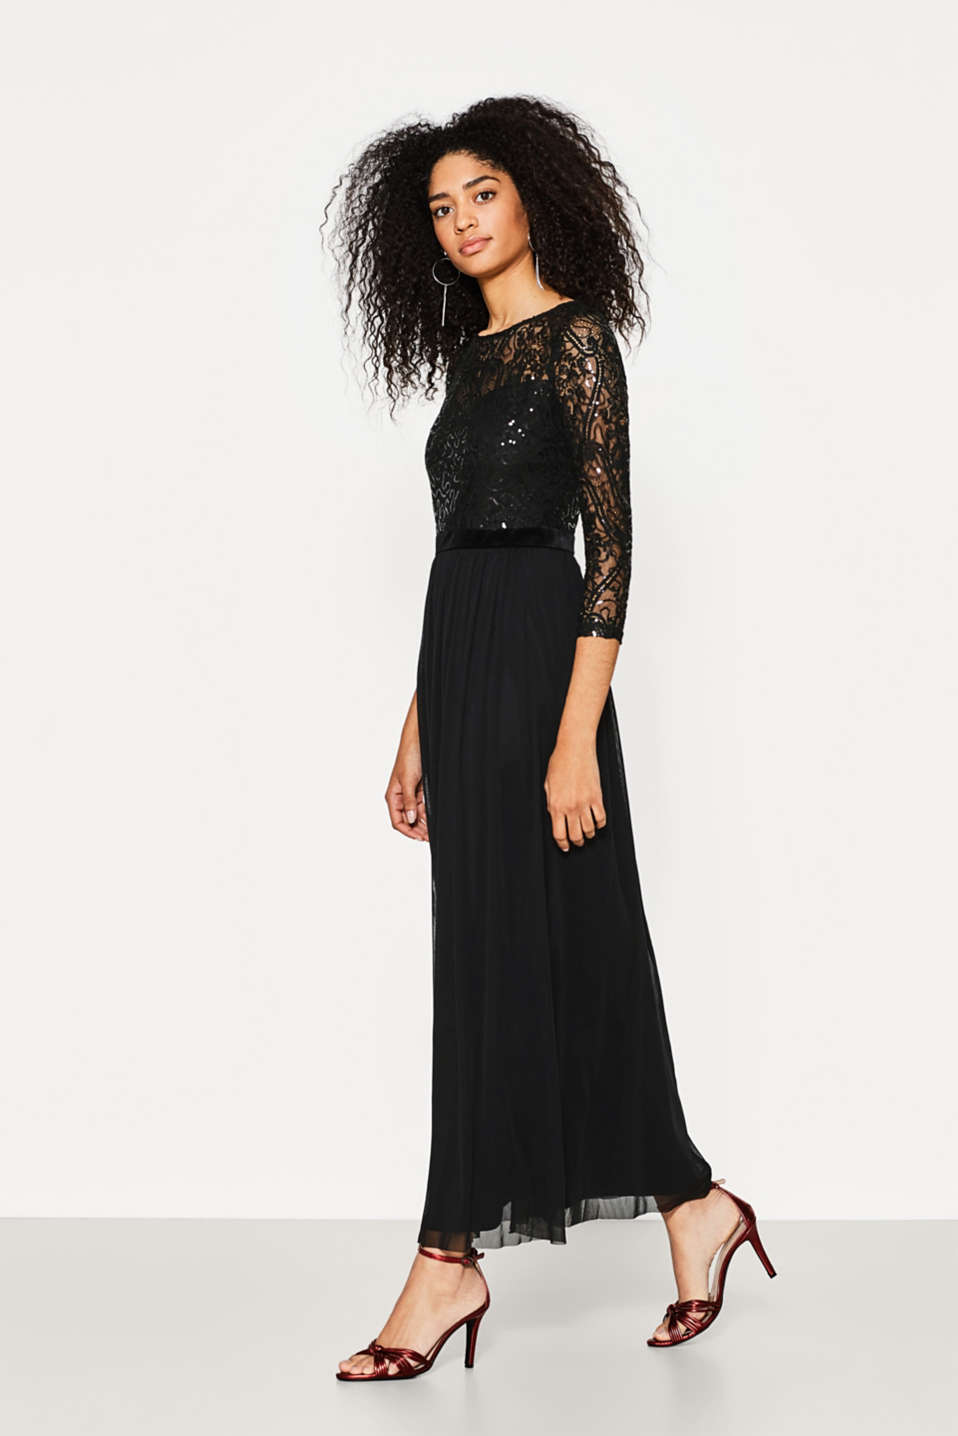 Maxi dress in lace, sequins and mesh